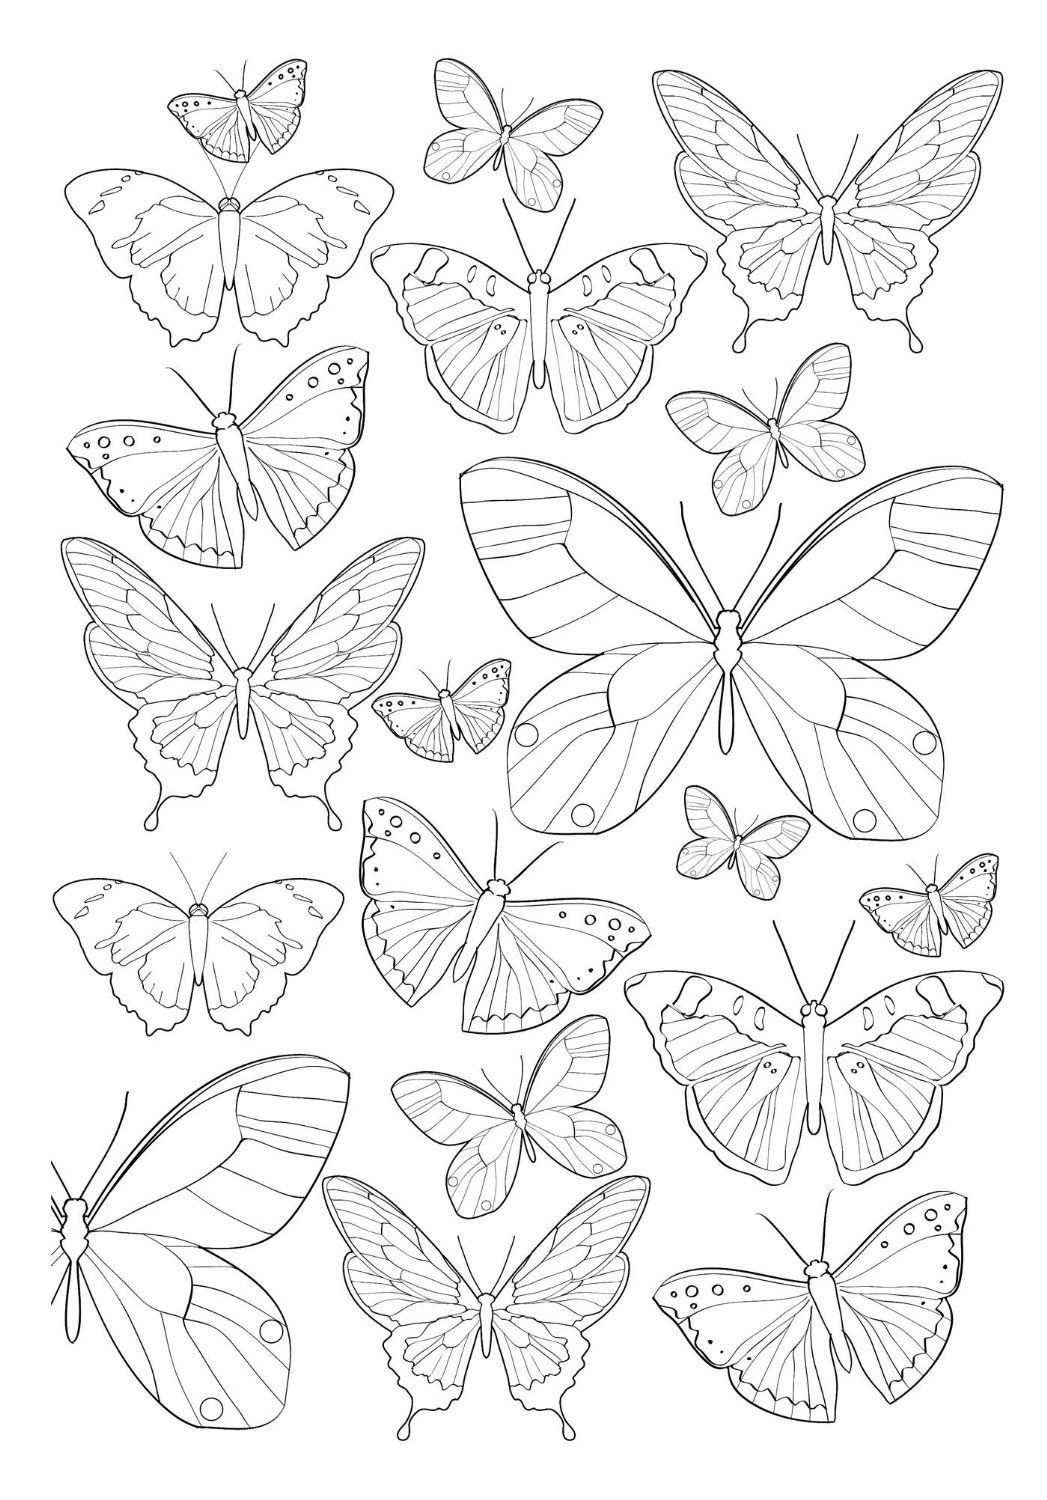 Related Image Butterfly Drawing Butterfly Coloring Page Butterfly Art [ 1500 x 1047 Pixel ]